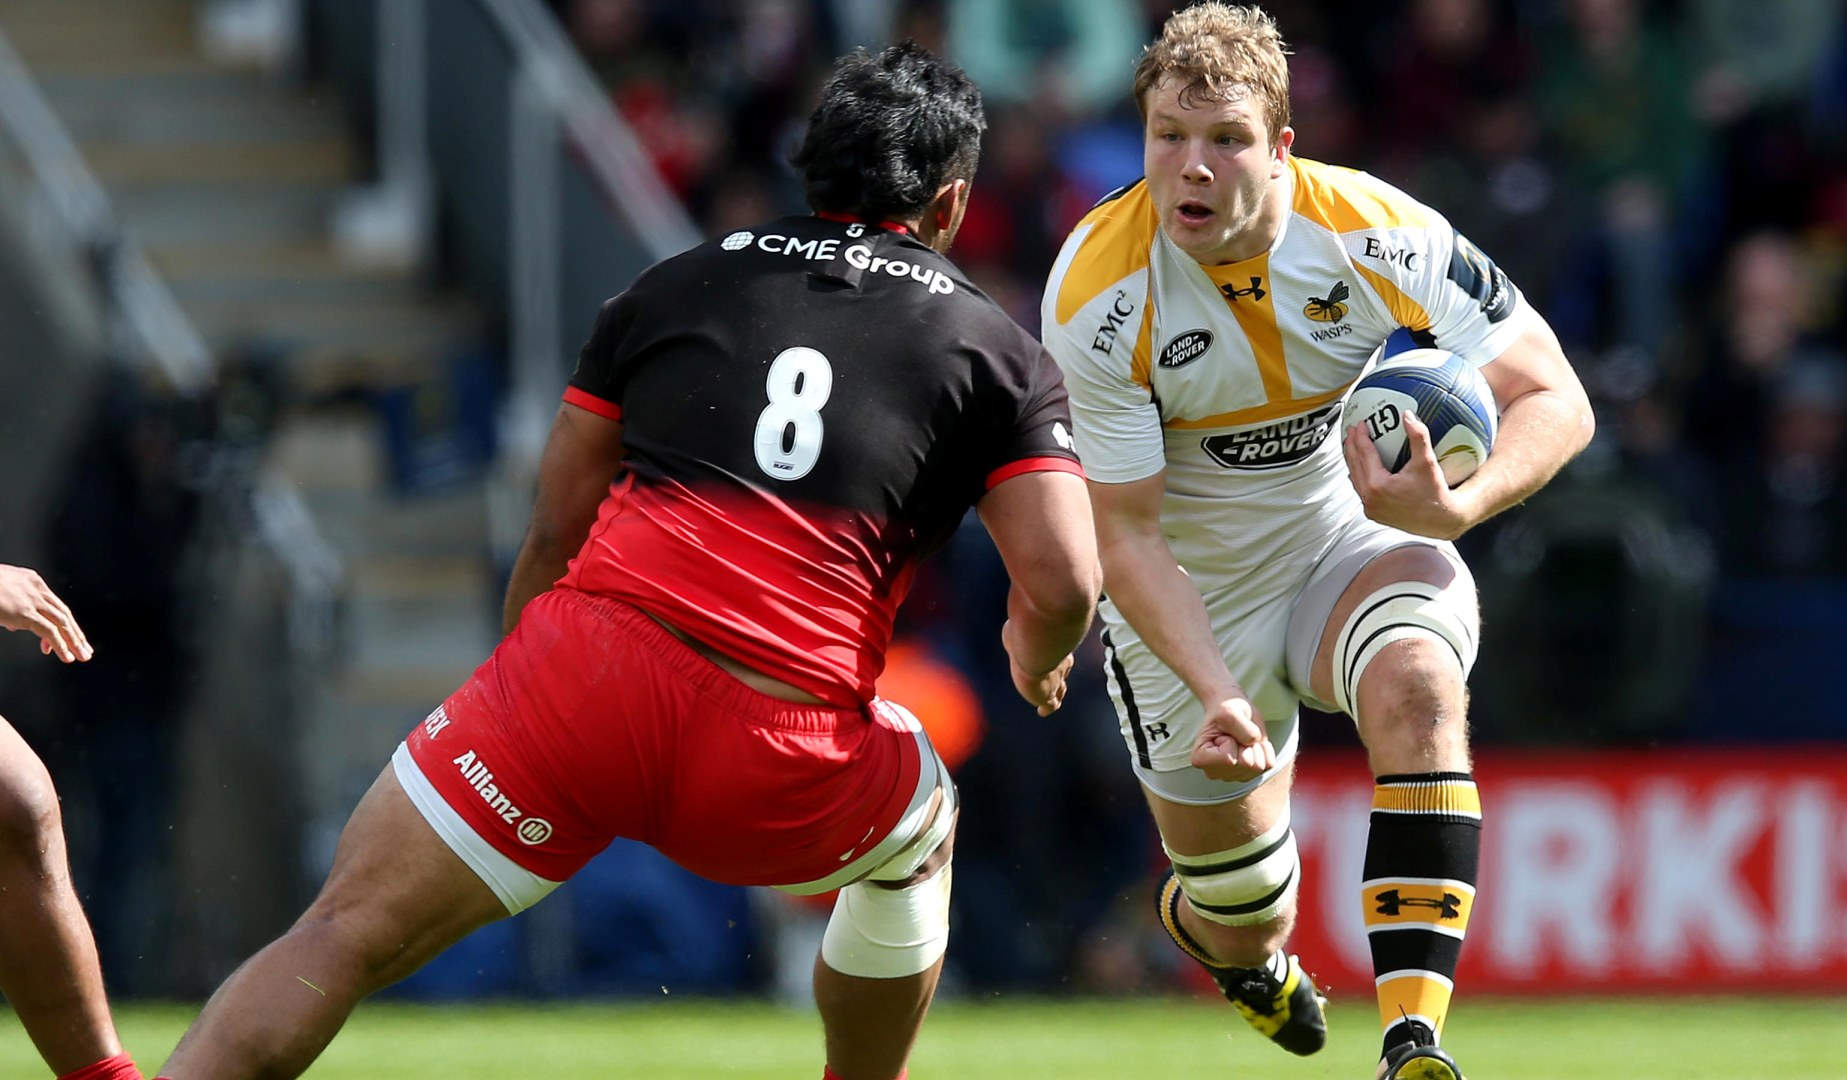 LionsWatch: Saracens and Vunipola thrive against Wasps